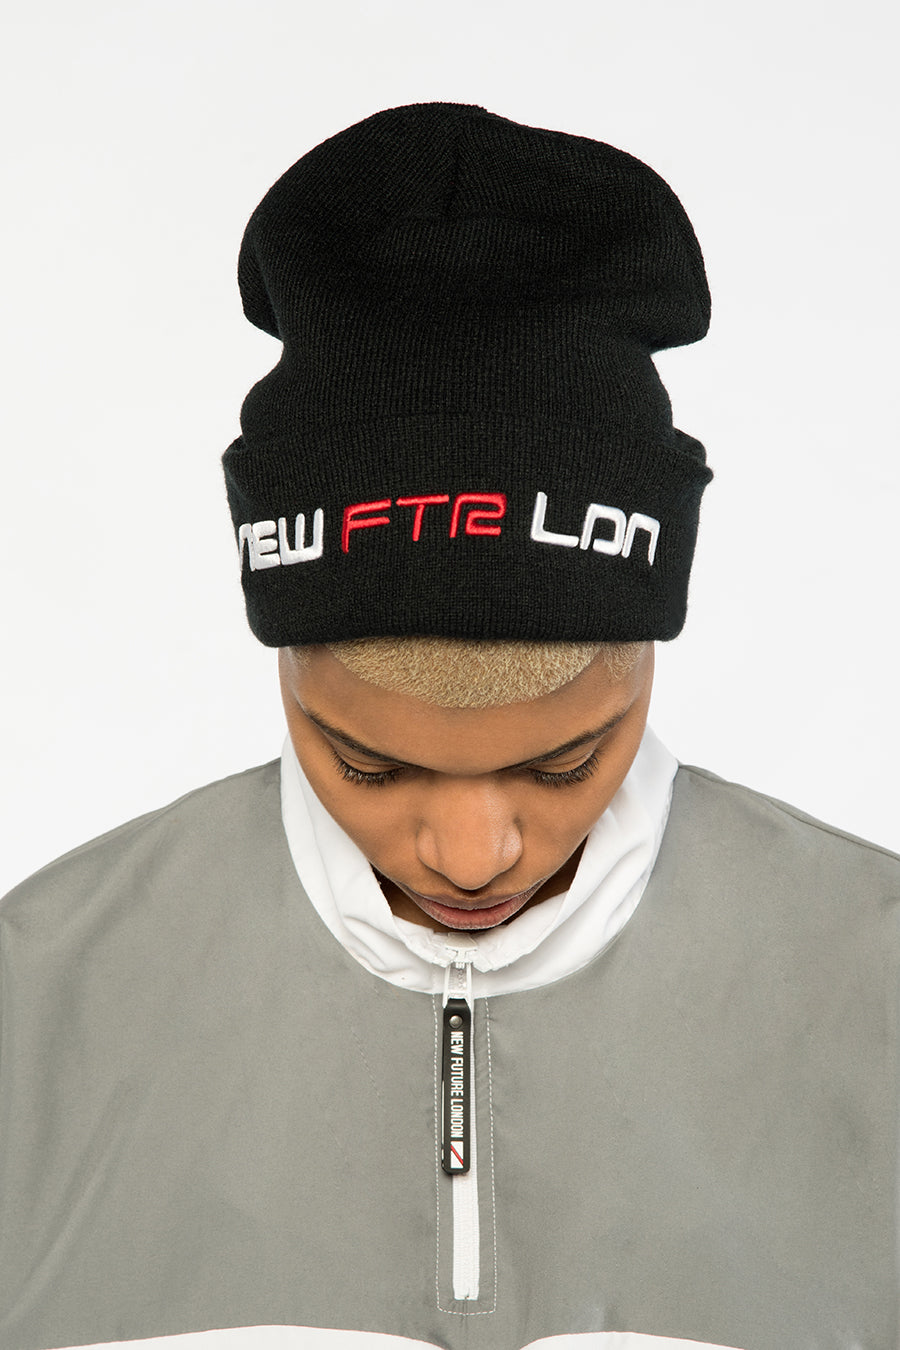 new_future_london_racer_beanie-1.jpg